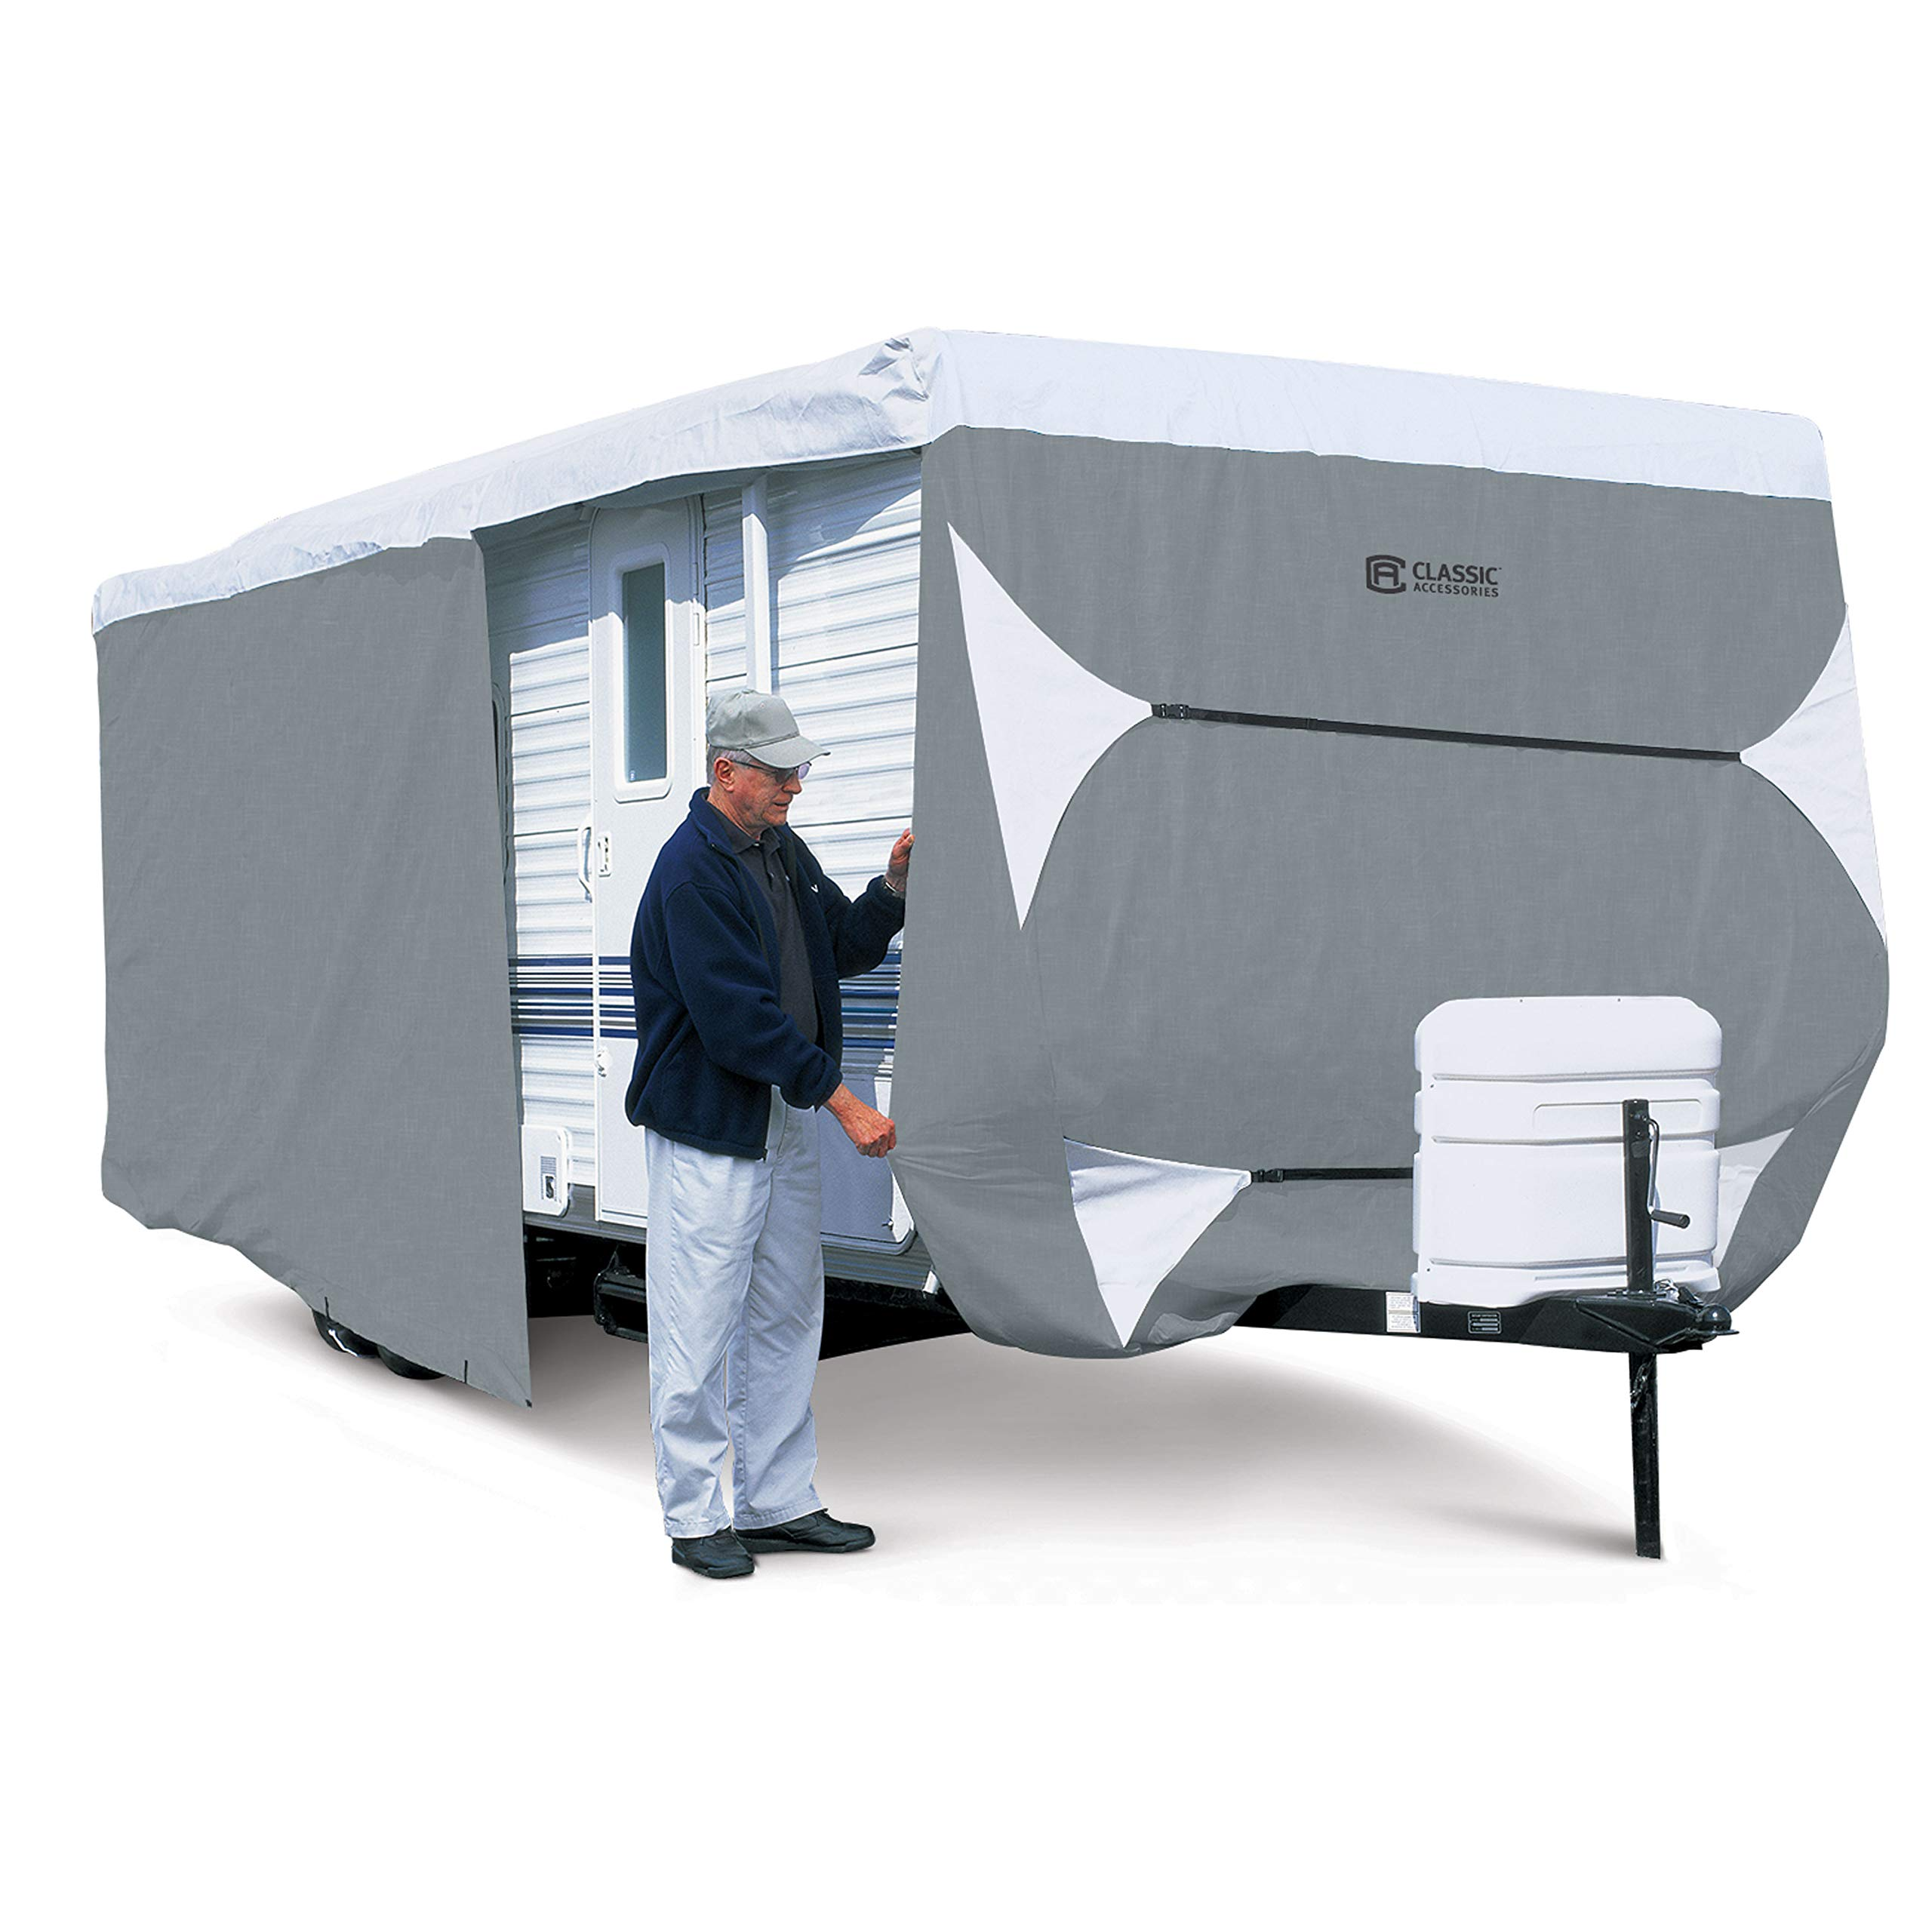 Classic Accessories OverDrive PolyPro 3 Deluxe Travel Trailer Cover, Fits 38' - 40'